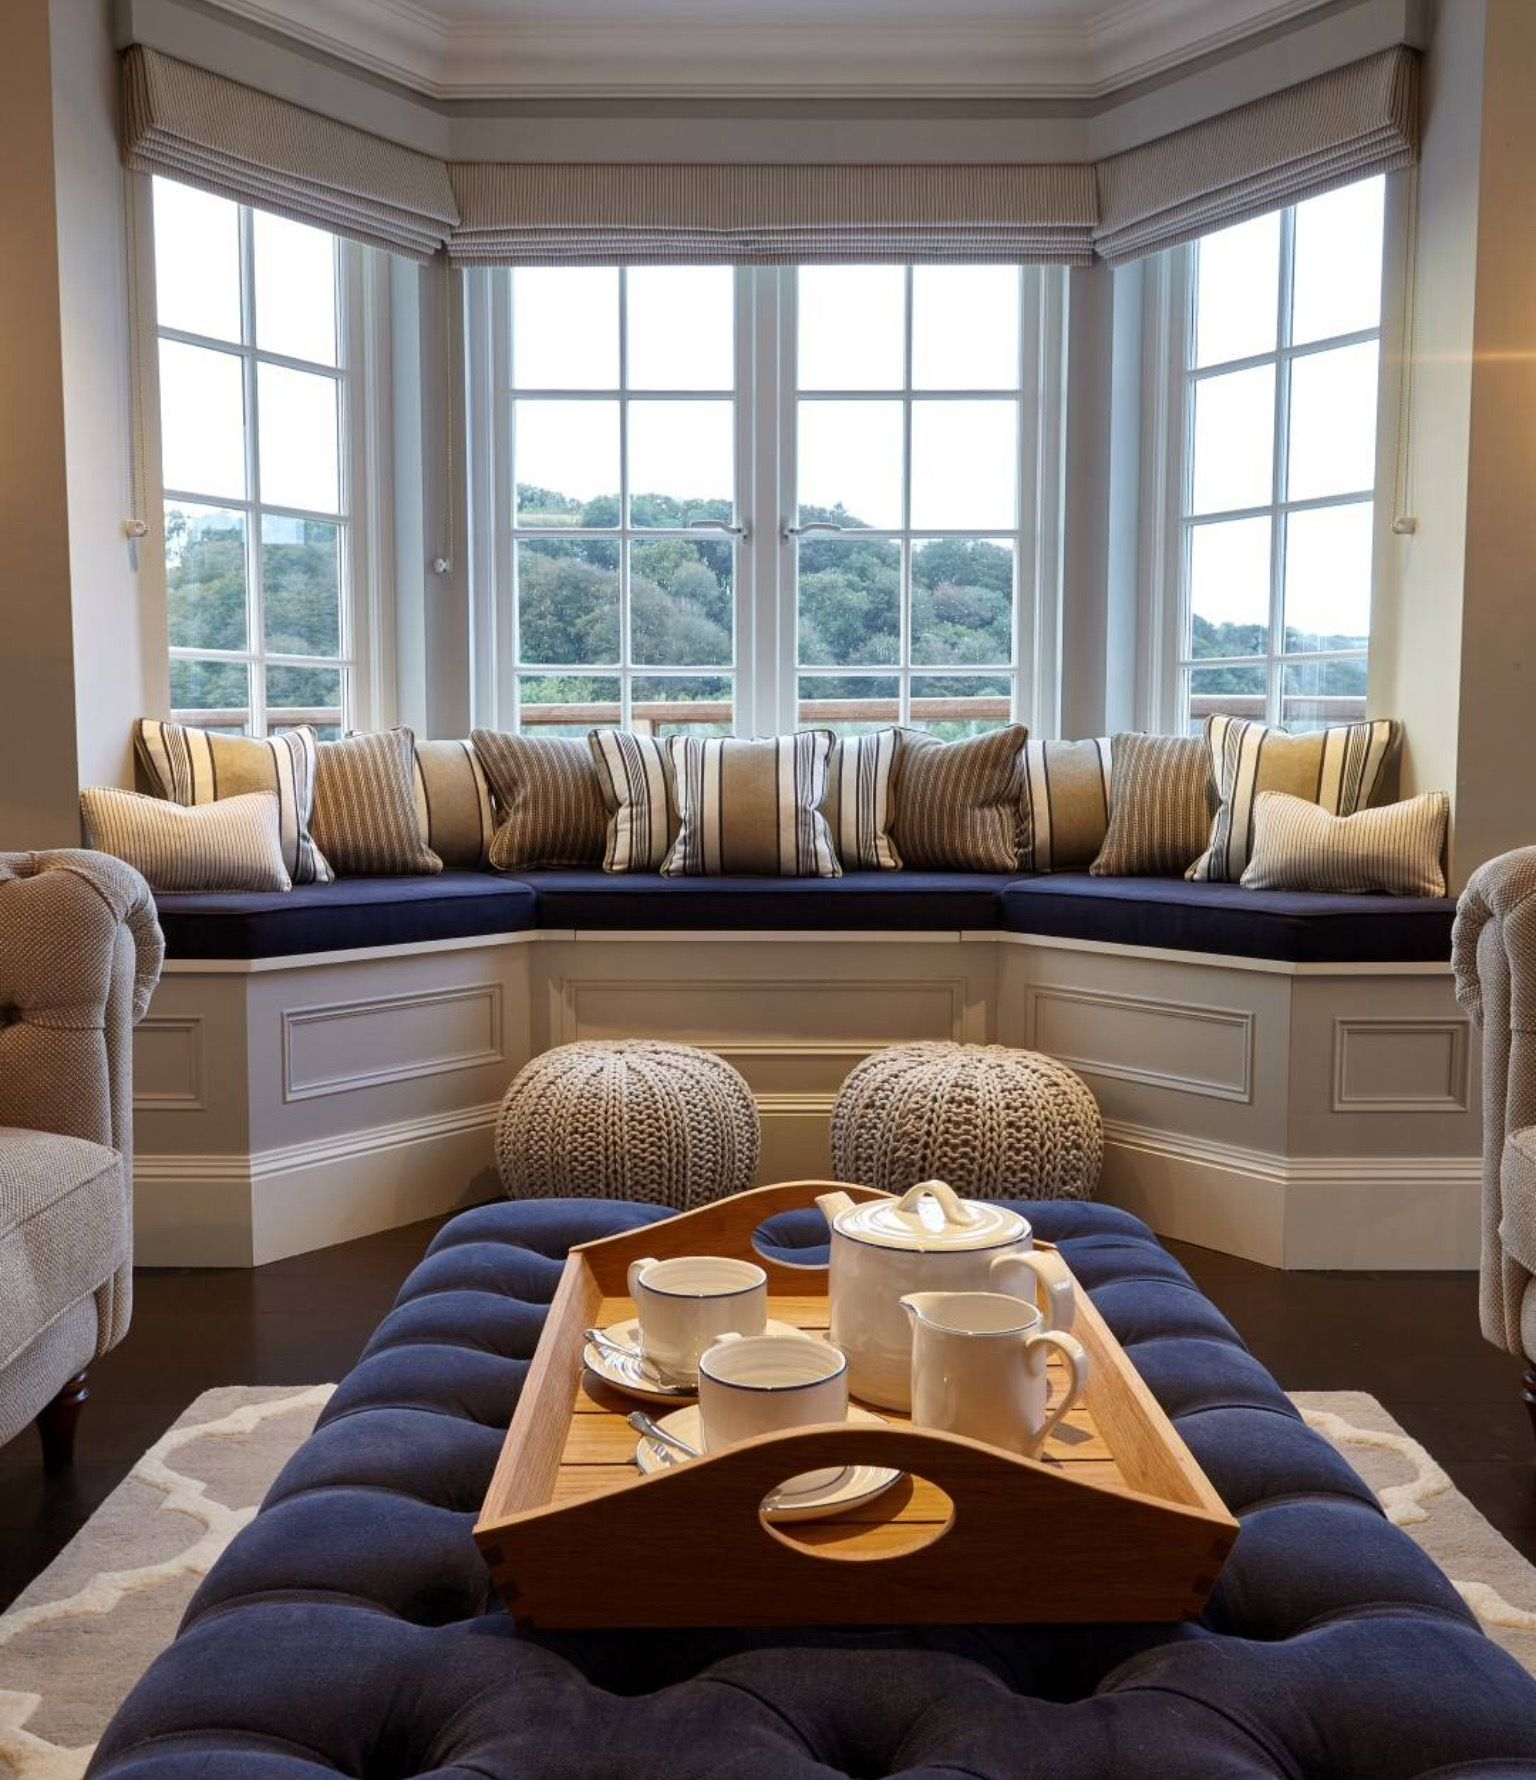 Window seat ideas living room  pin by verónica russo on bow window  pinterest